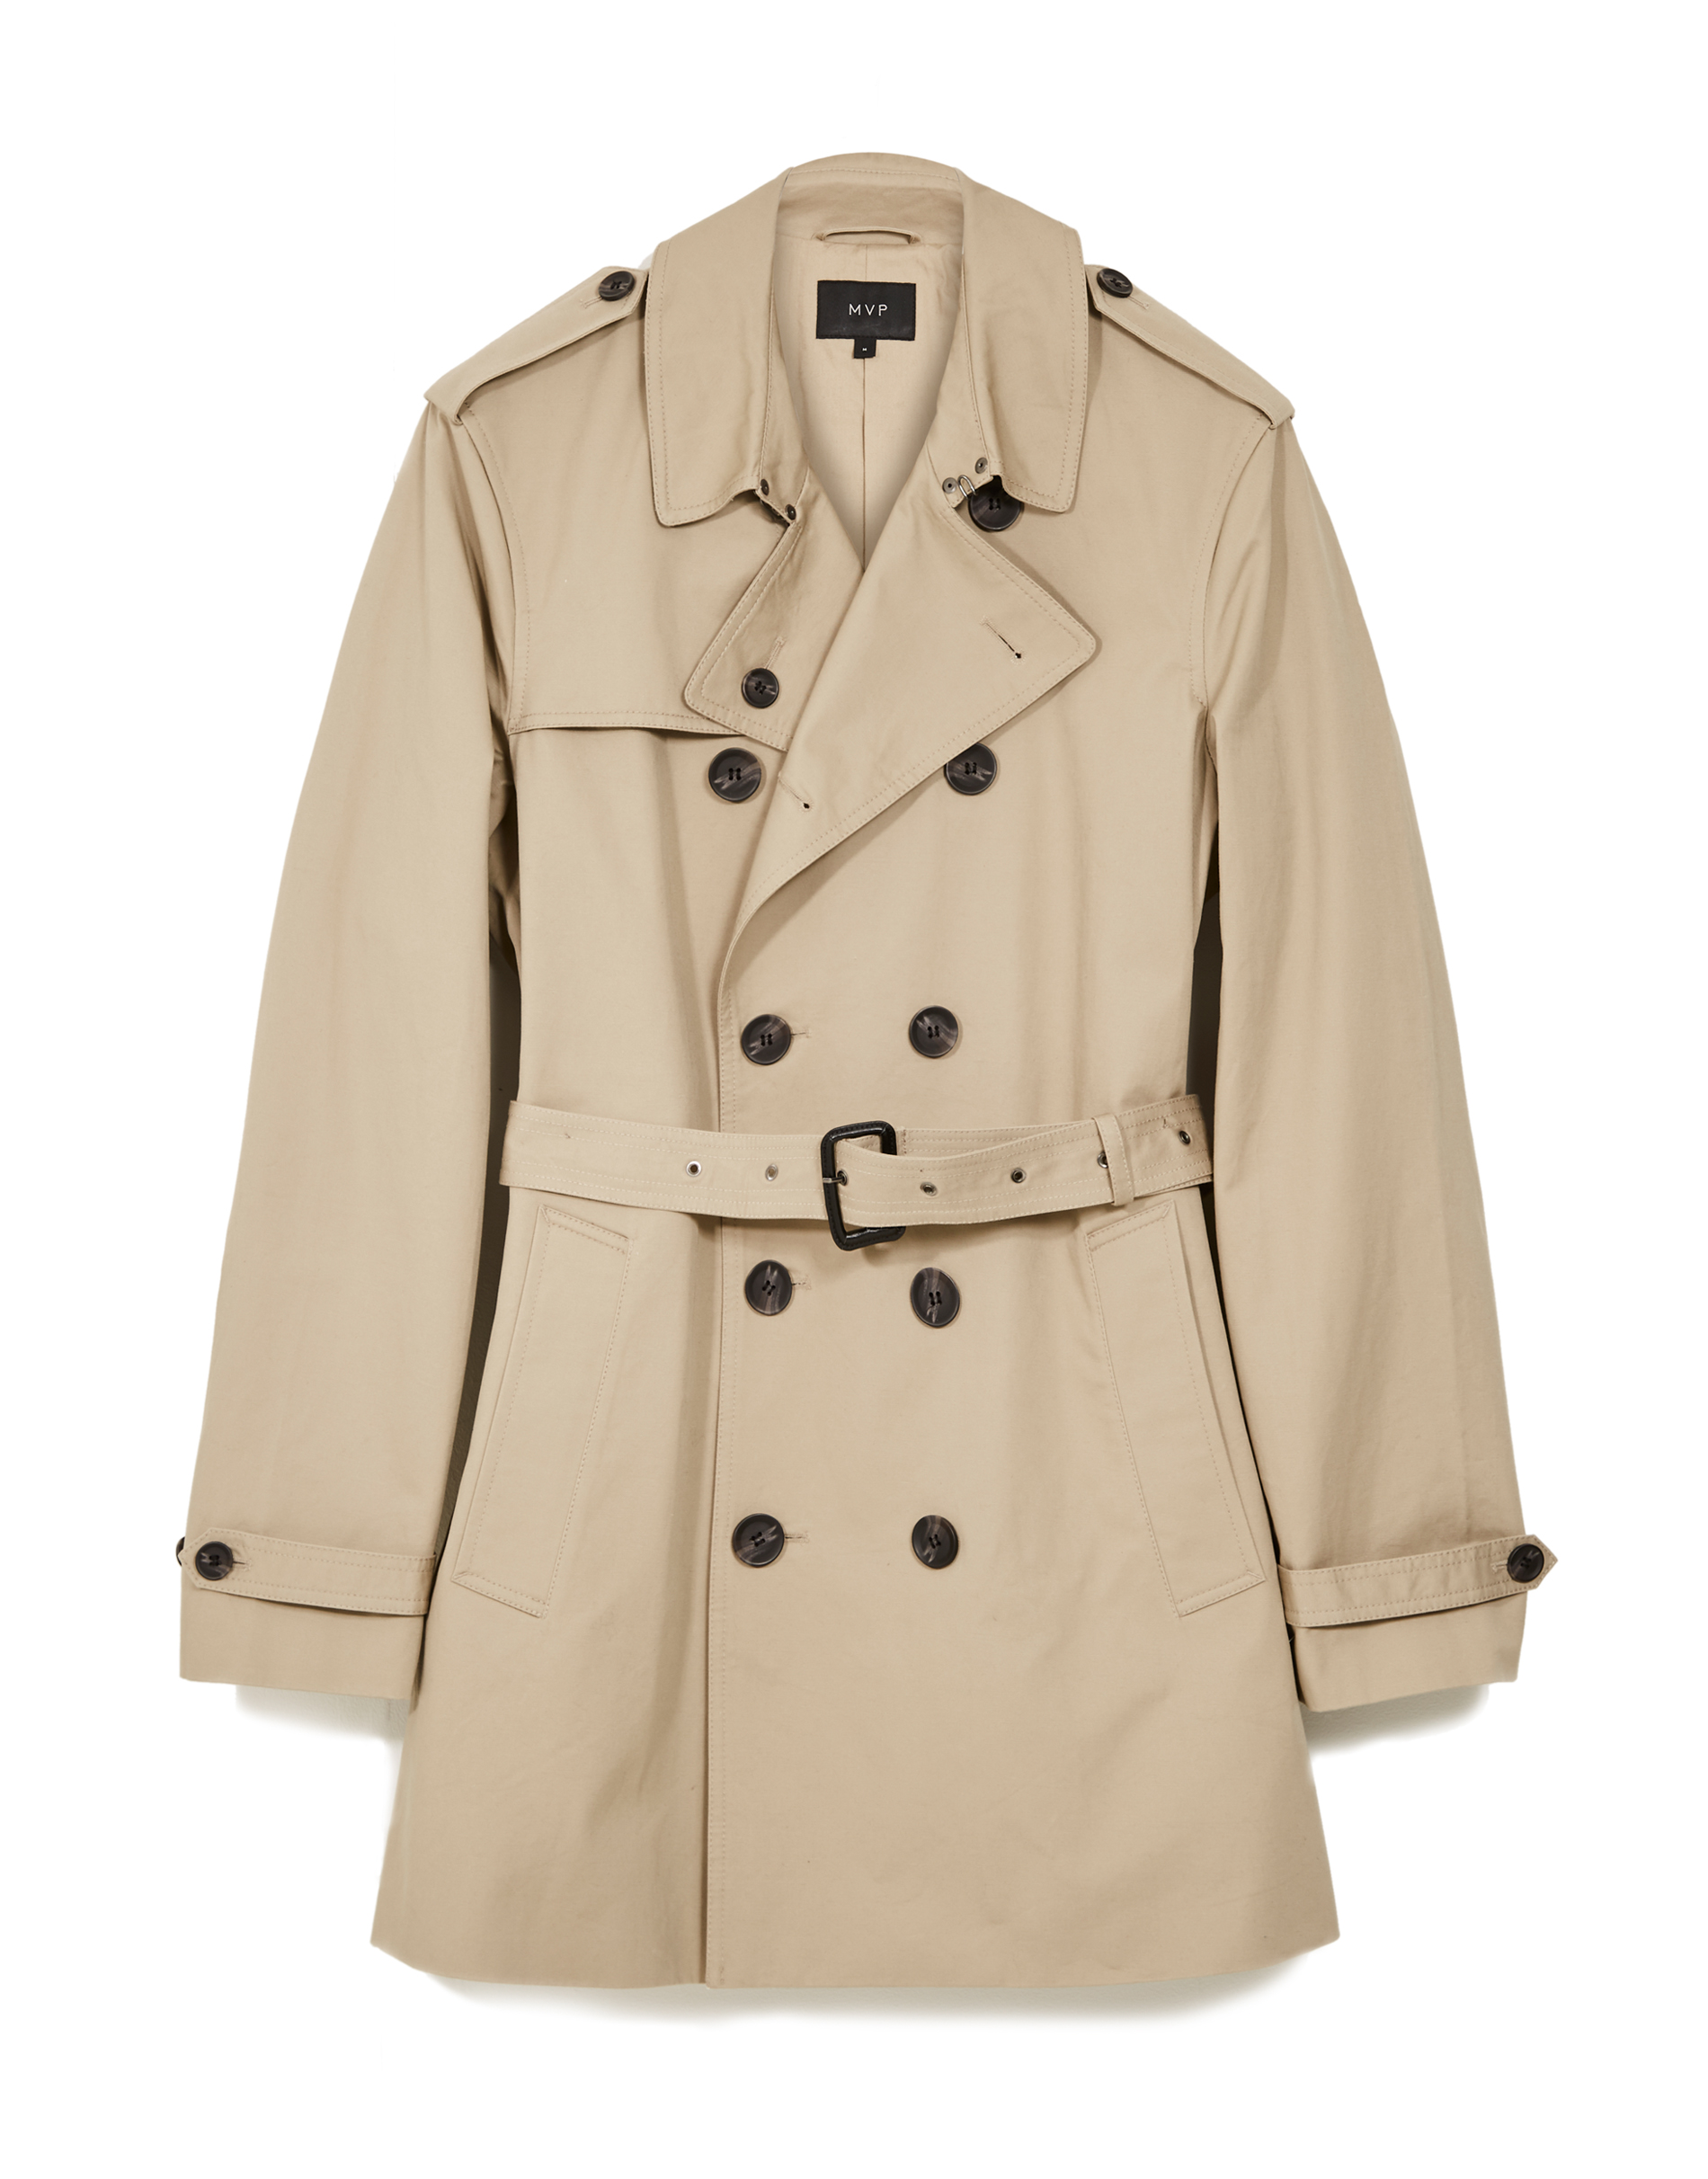 MVP HONEY Fleet Double Breasted Cotton Trench Coat